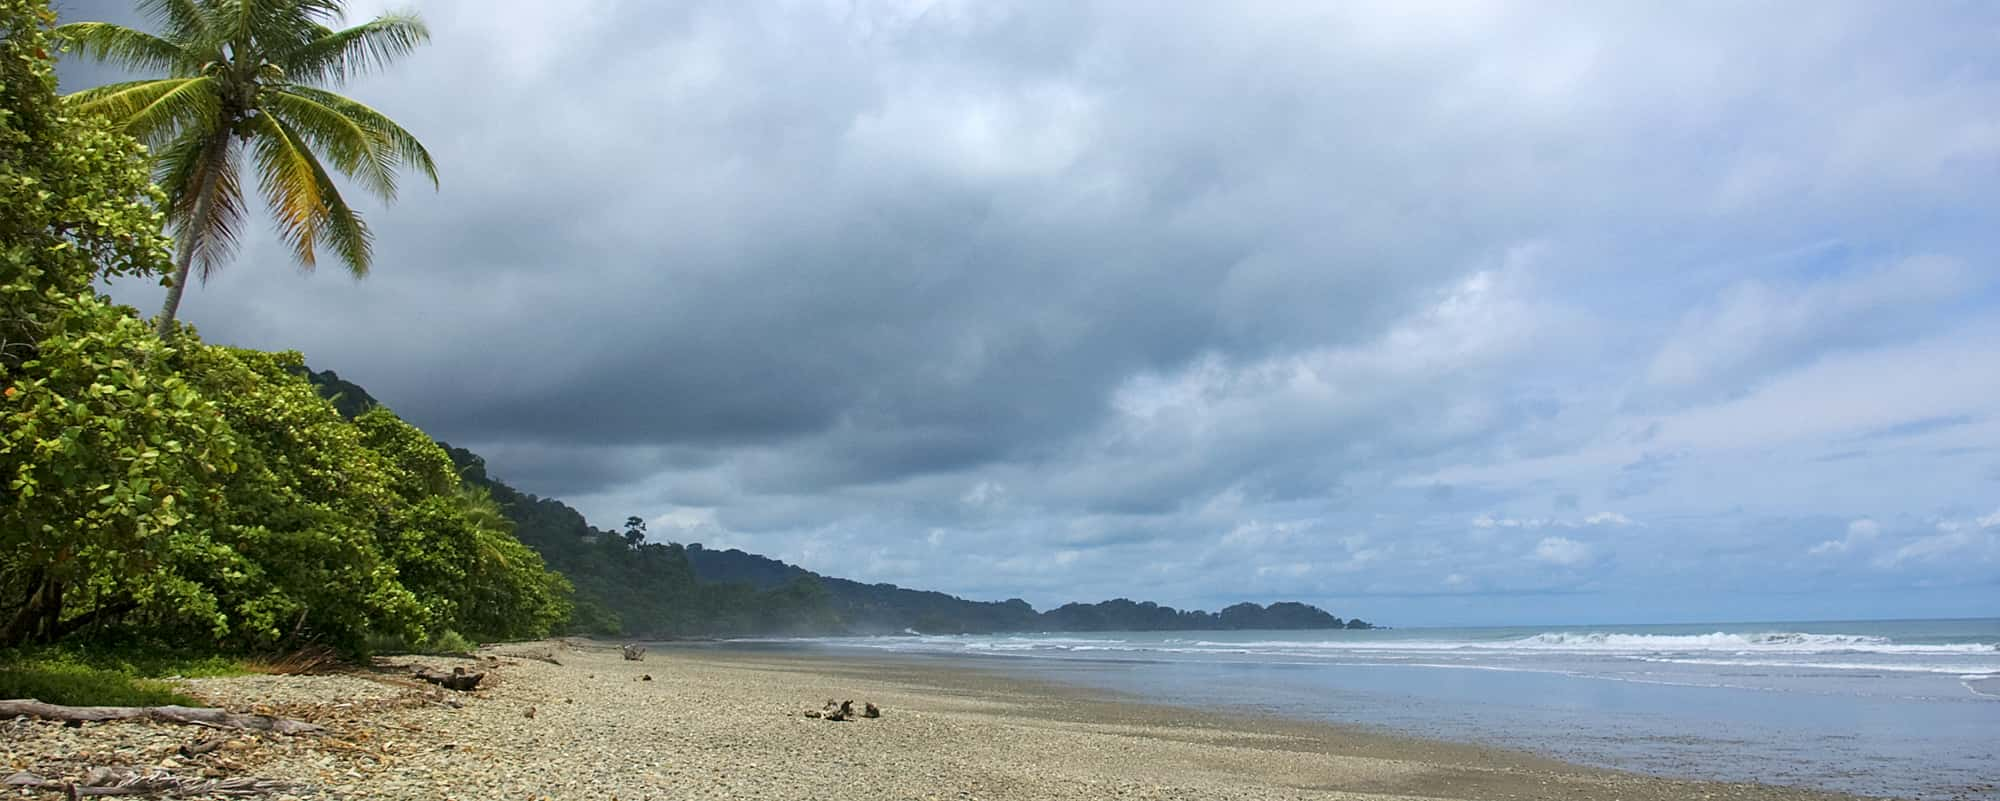 Dominical Hotels Costa Rica Dominical Hotel Accommodations From